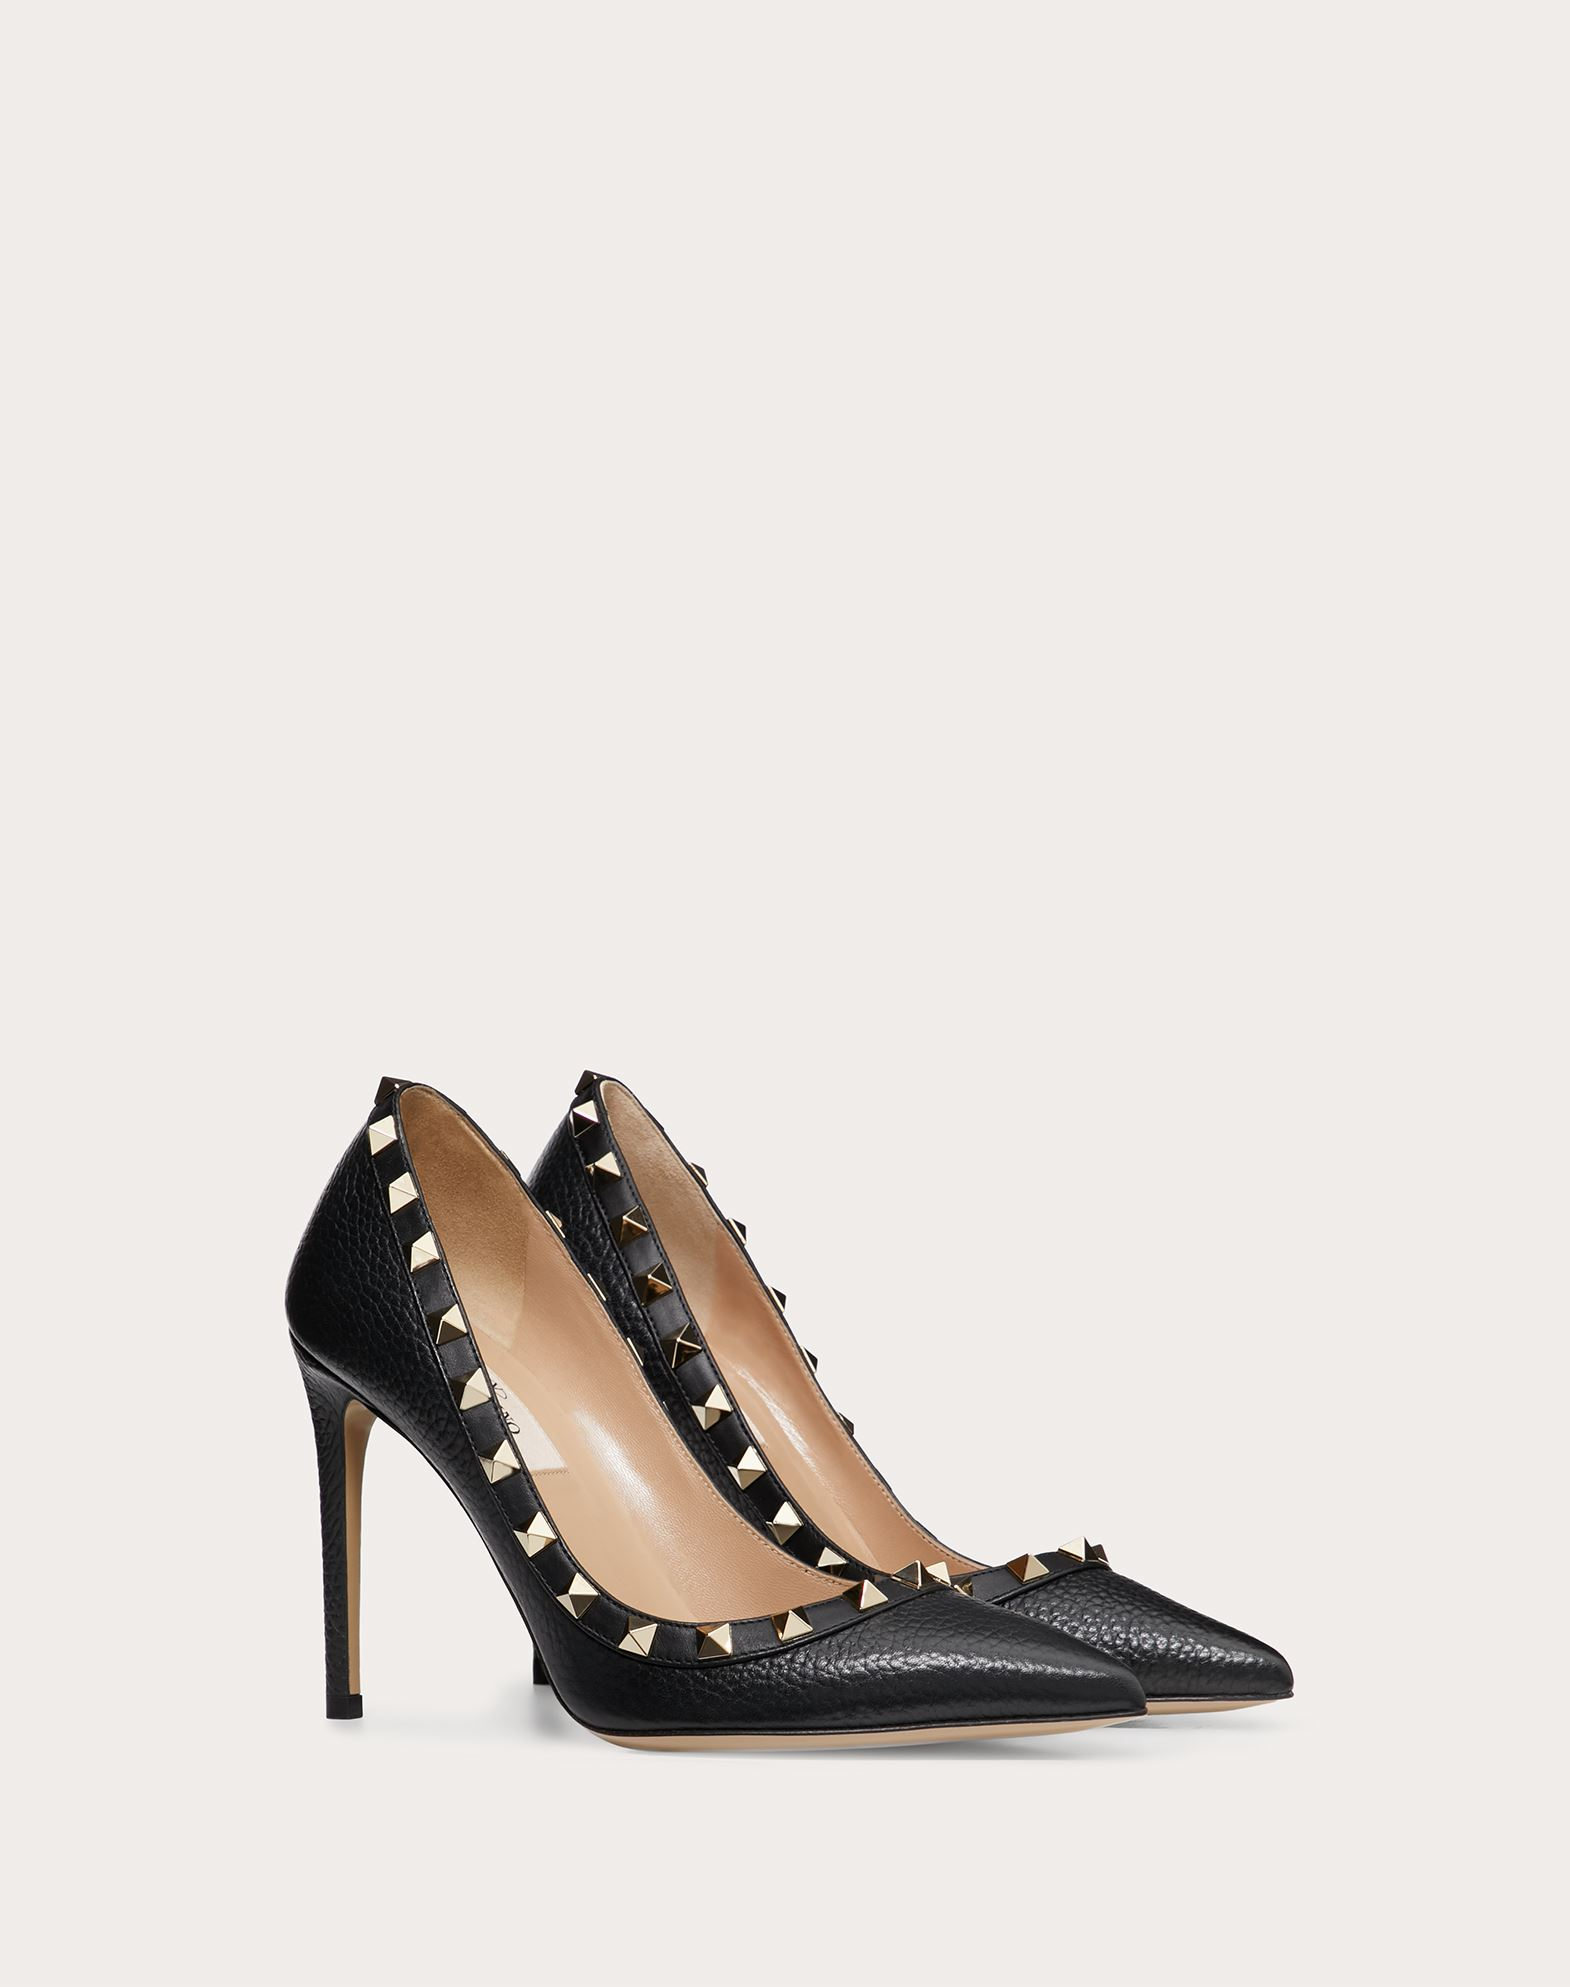 pumps stud pump metallic browse xlarge leather rock shopstyle valentino rockstud